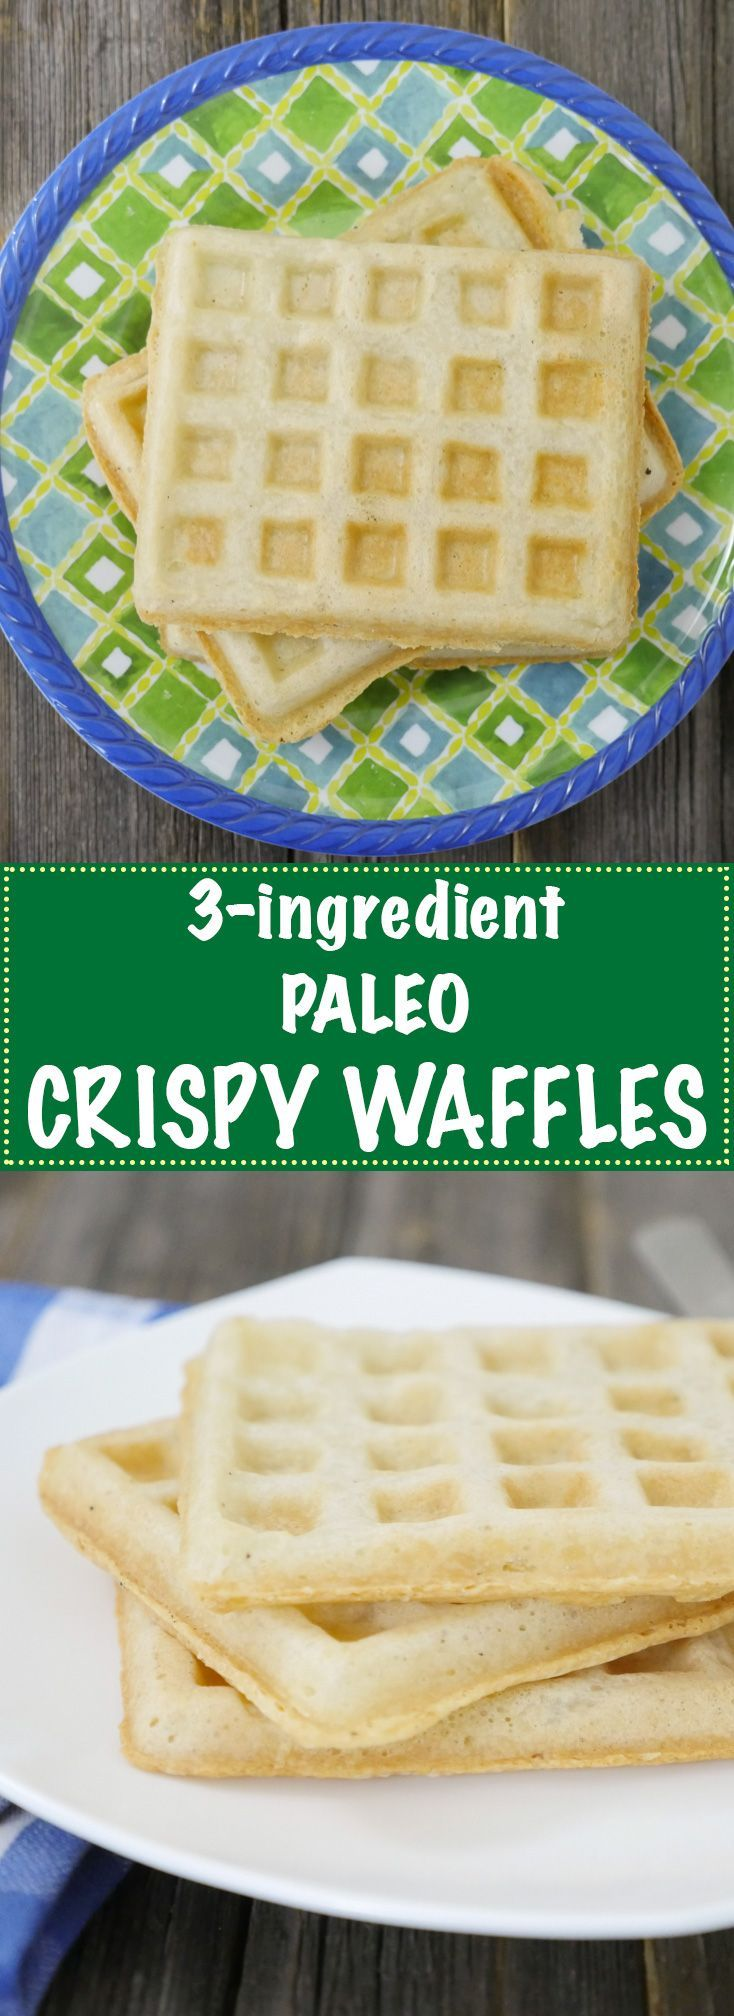 These CRISPY WAFFLES are gluten-free, dairy-free, vegan AND paleo. You only need 3 ingredients!! Find the recipe on MyHeartBeets.com